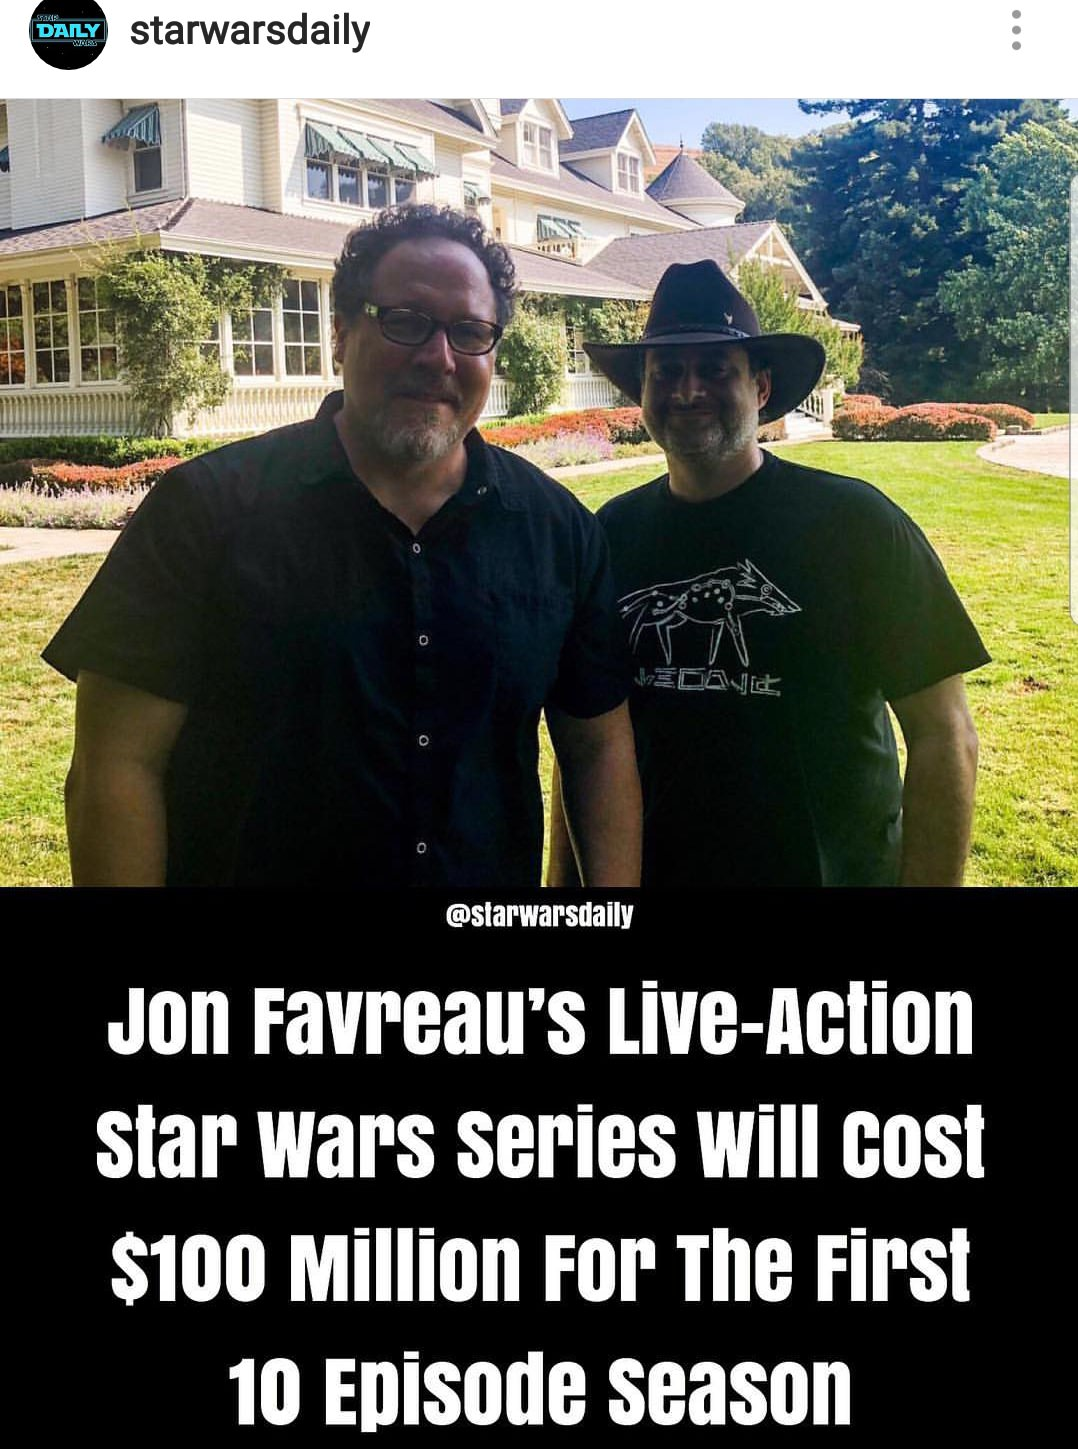 Star wars live action TV series update